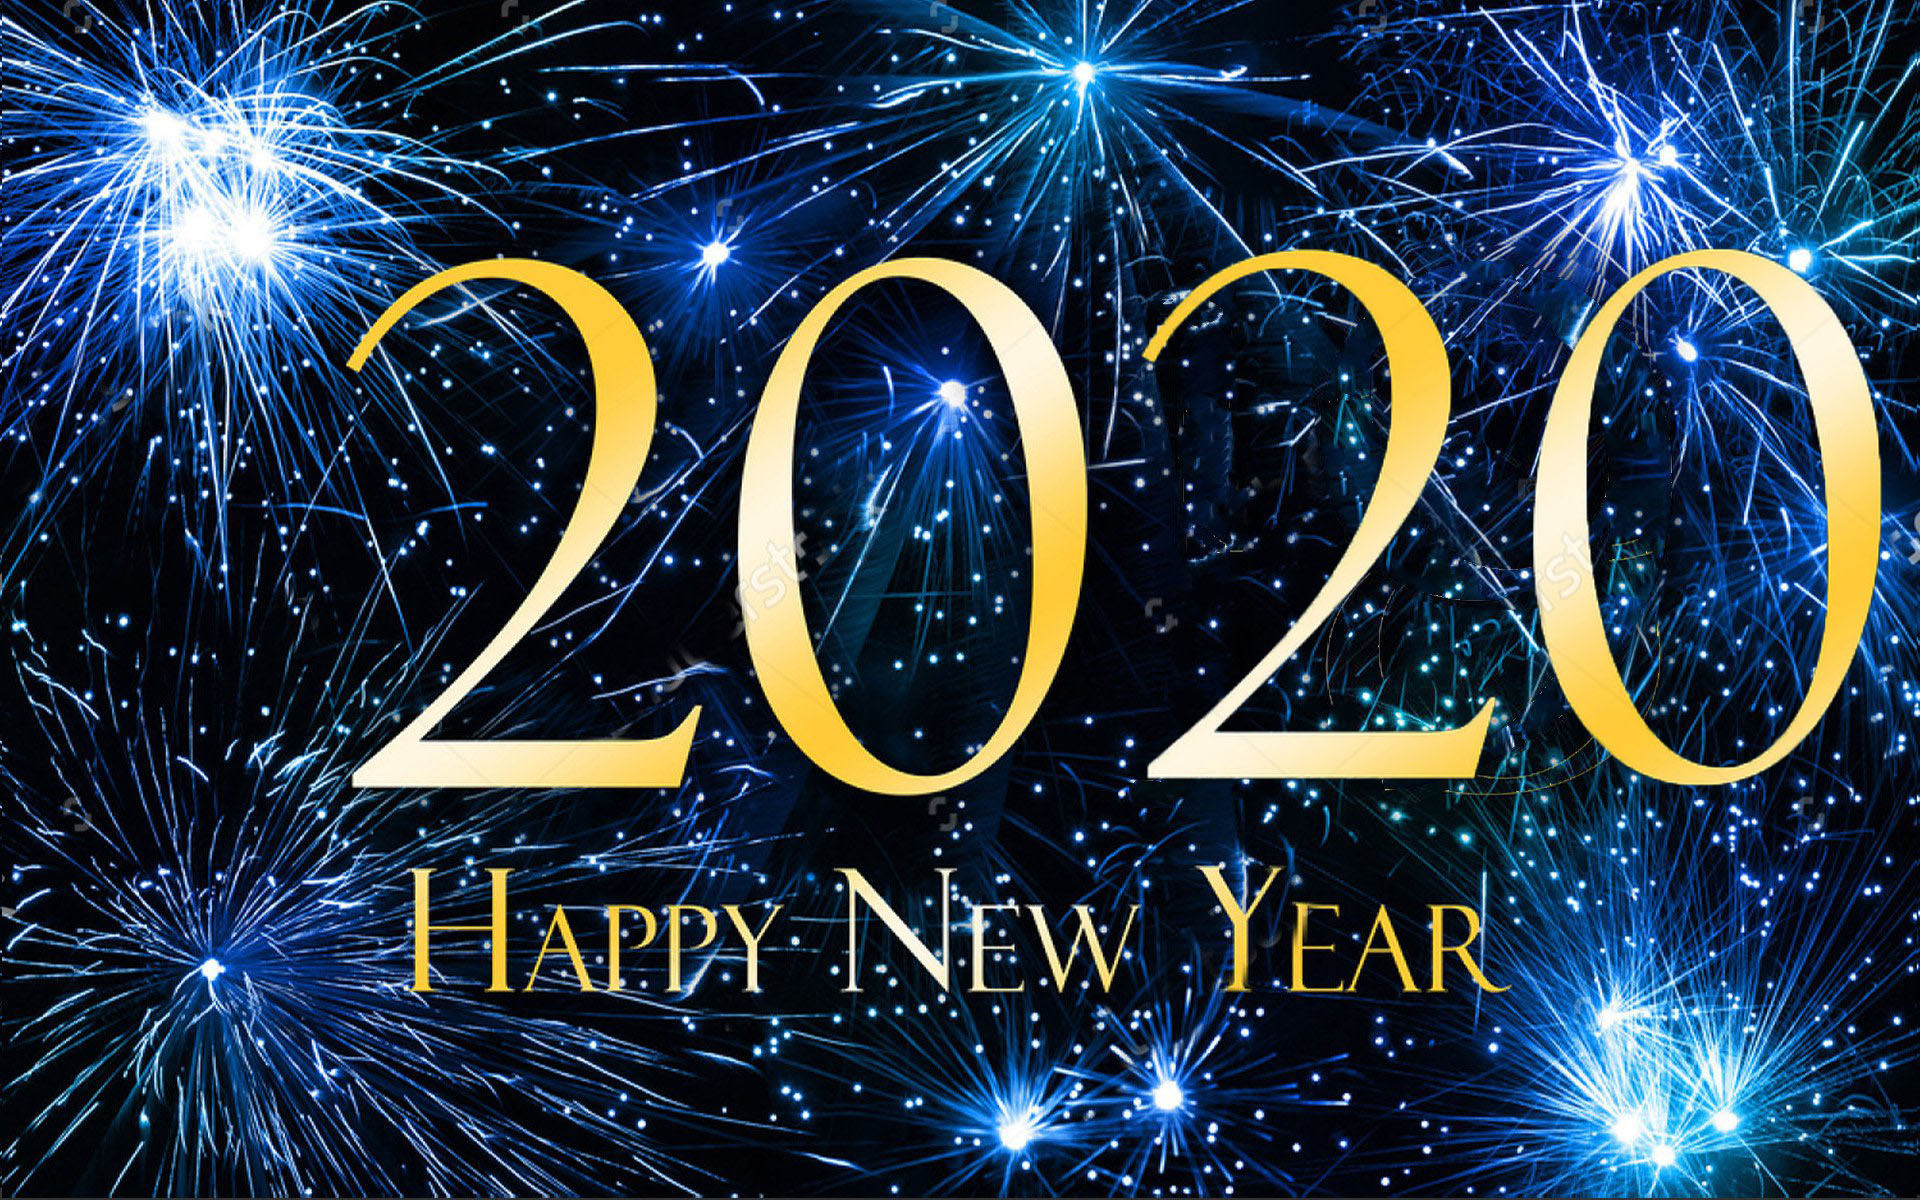 Happy New Year 2020 HD Wallpapers - Download